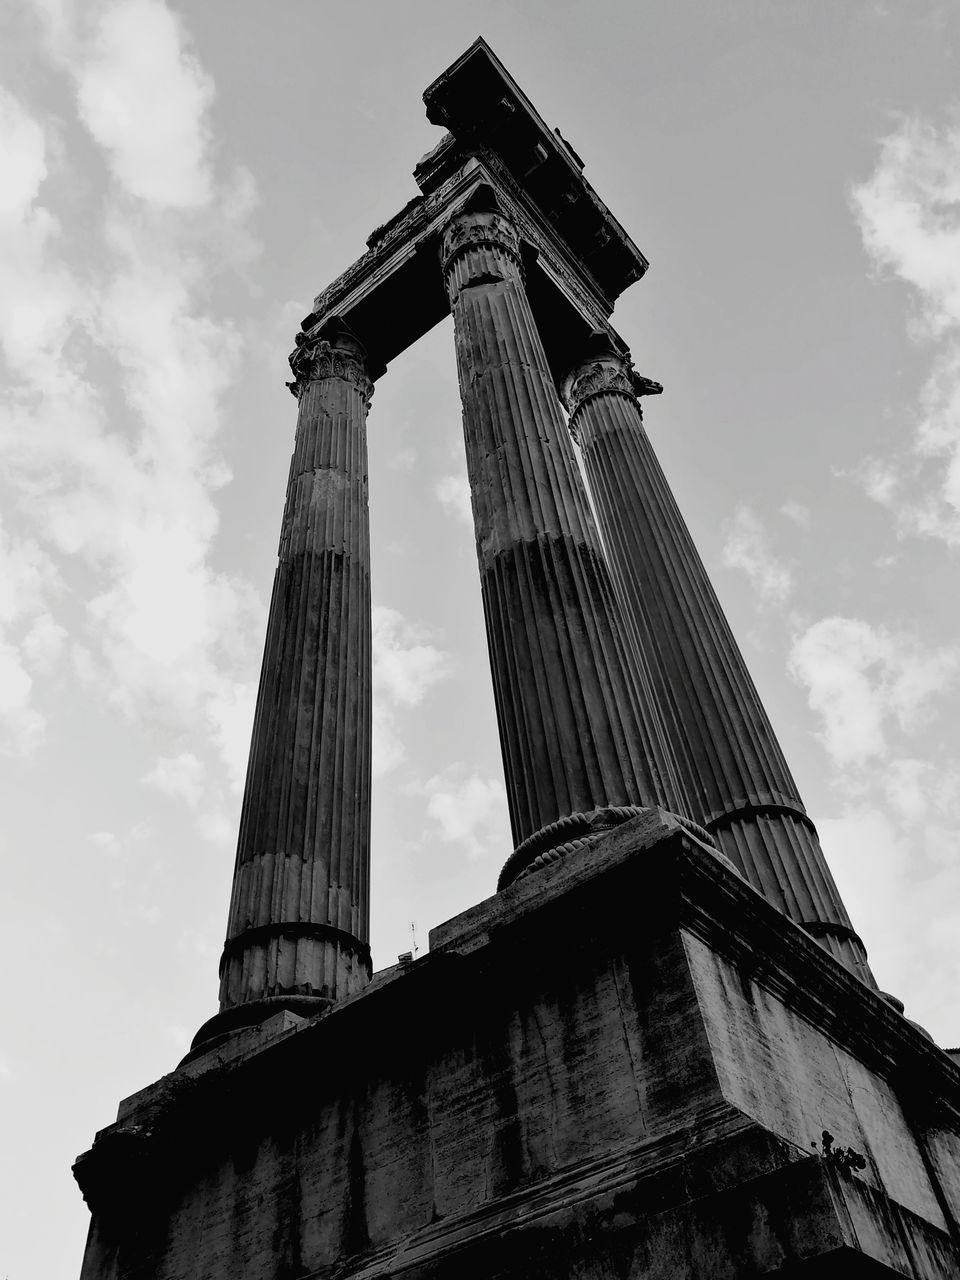 sky, low angle view, architecture, built structure, cloud - sky, nature, history, the past, building exterior, tourism, day, travel destinations, no people, ancient, travel, architectural column, ancient civilization, tall - high, outdoors, memorial, archaeology, ruined